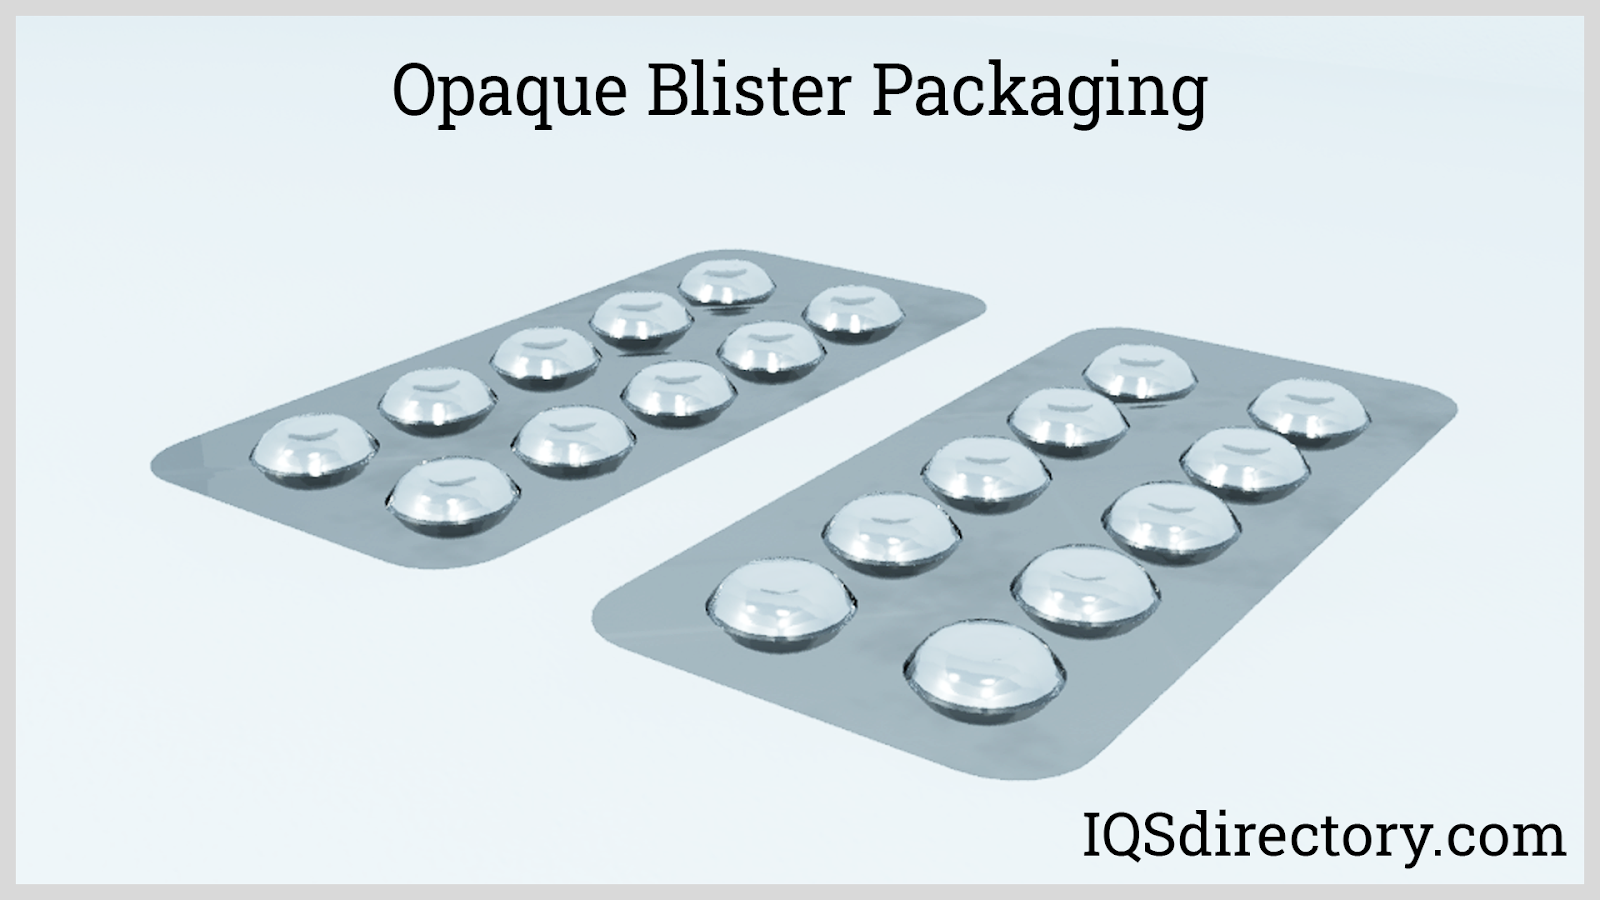 Opaque Blister Packaging